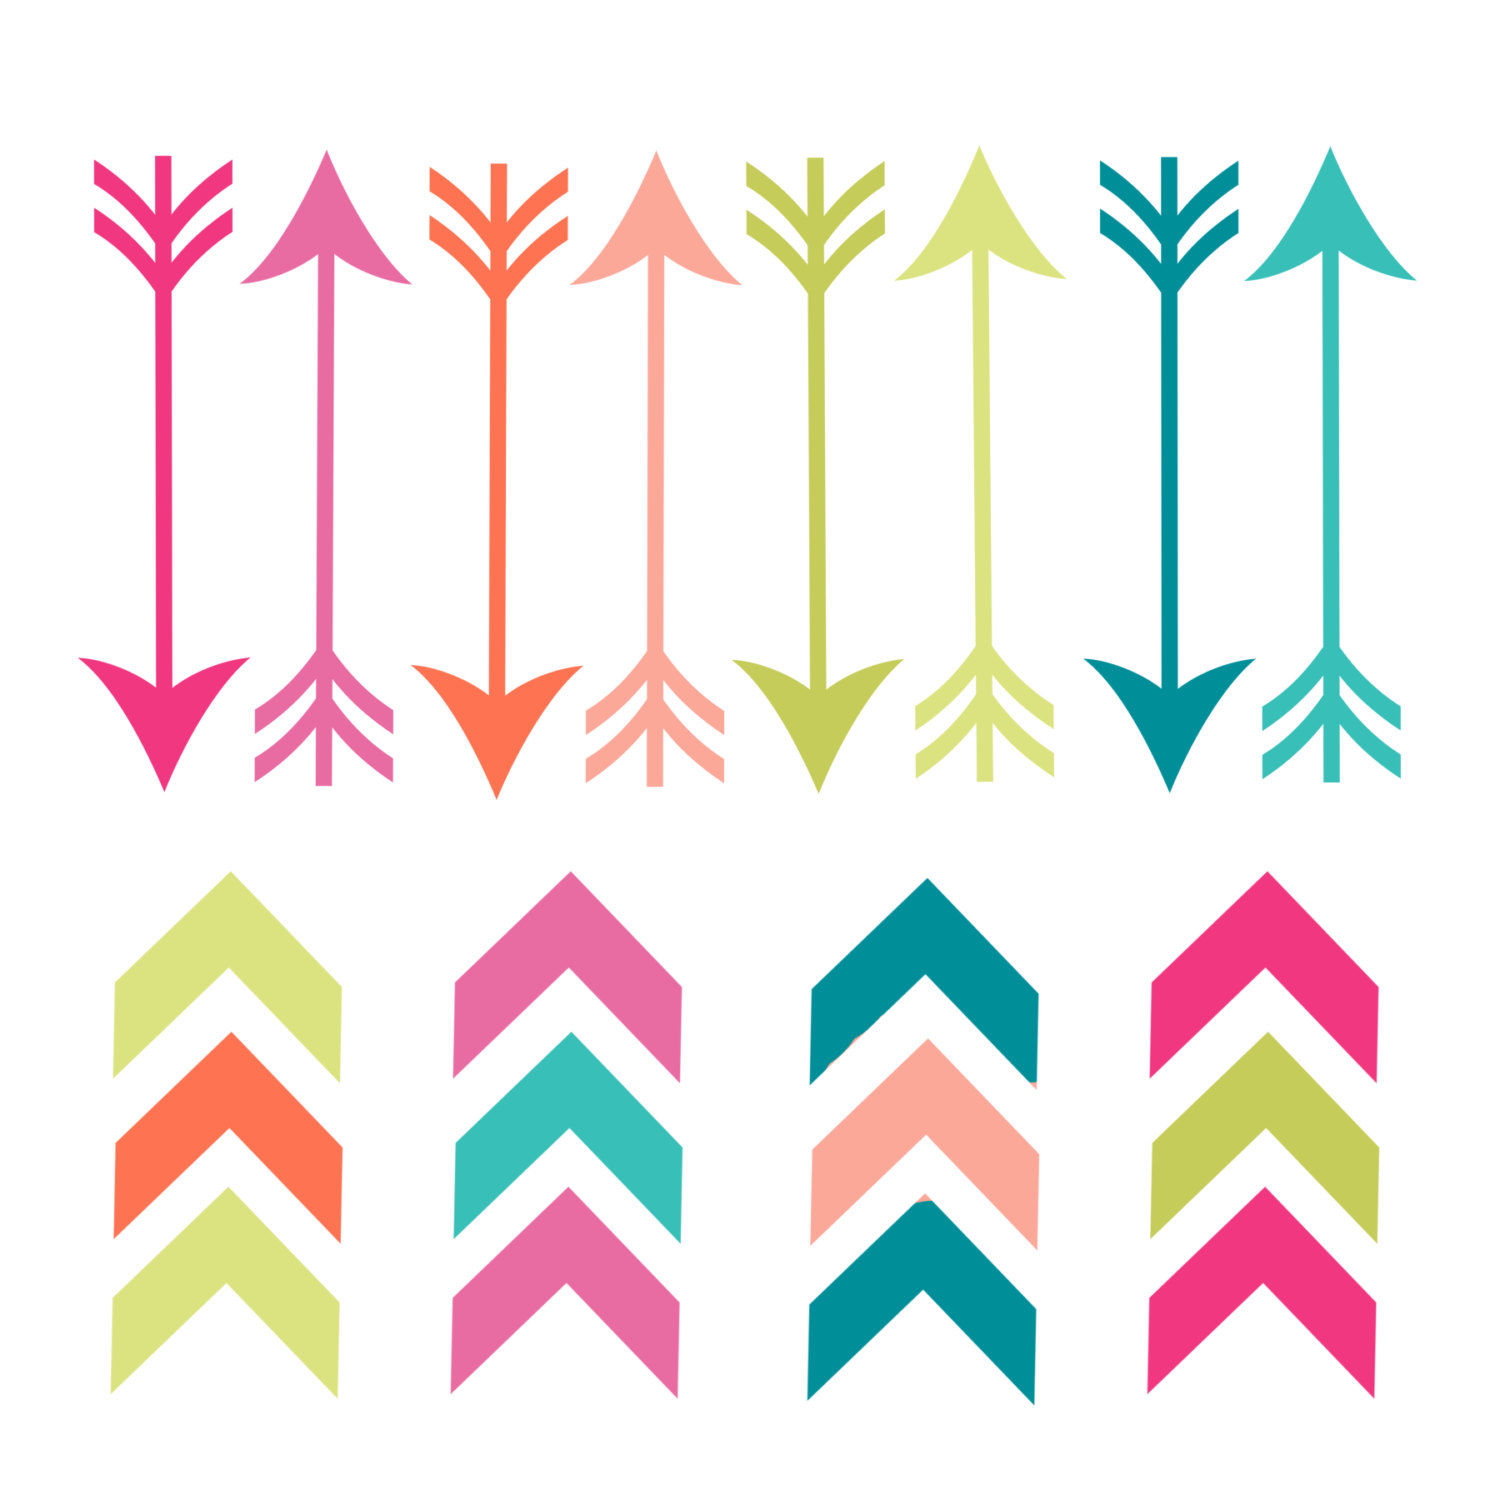 Arrows kid famclipart feather. 3 tribal arrow clipart